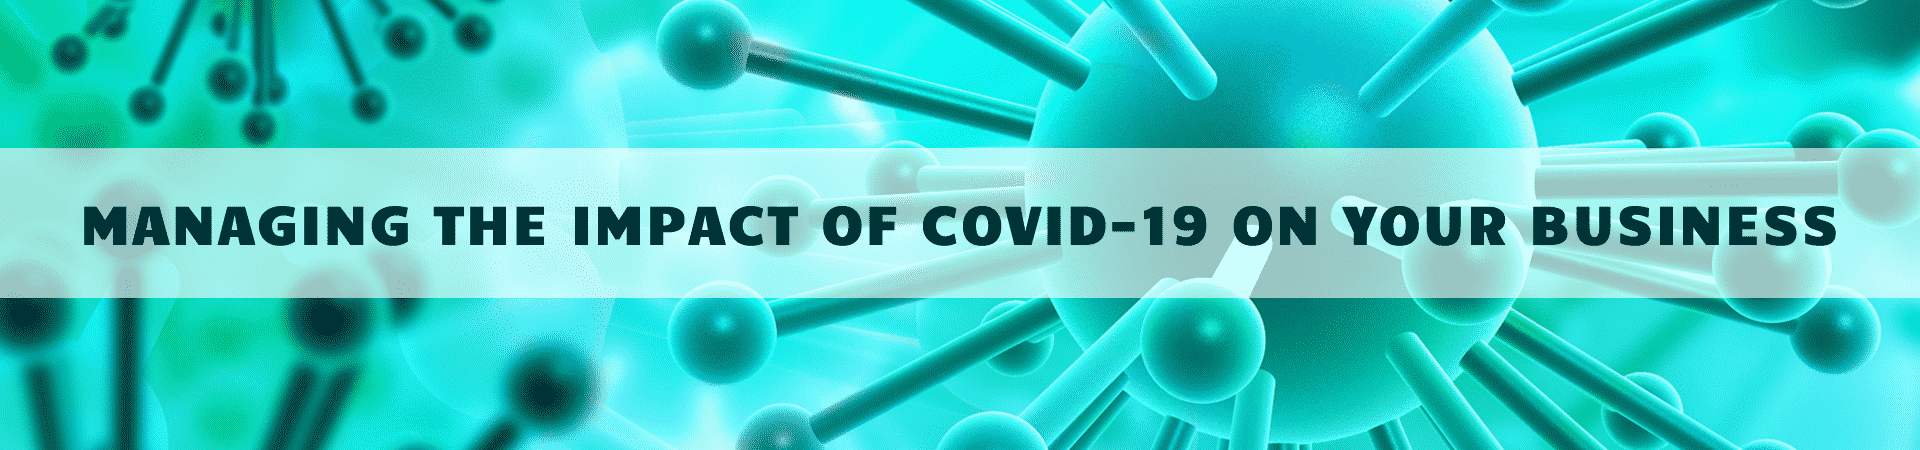 Covid 19 virus image in teals and greens